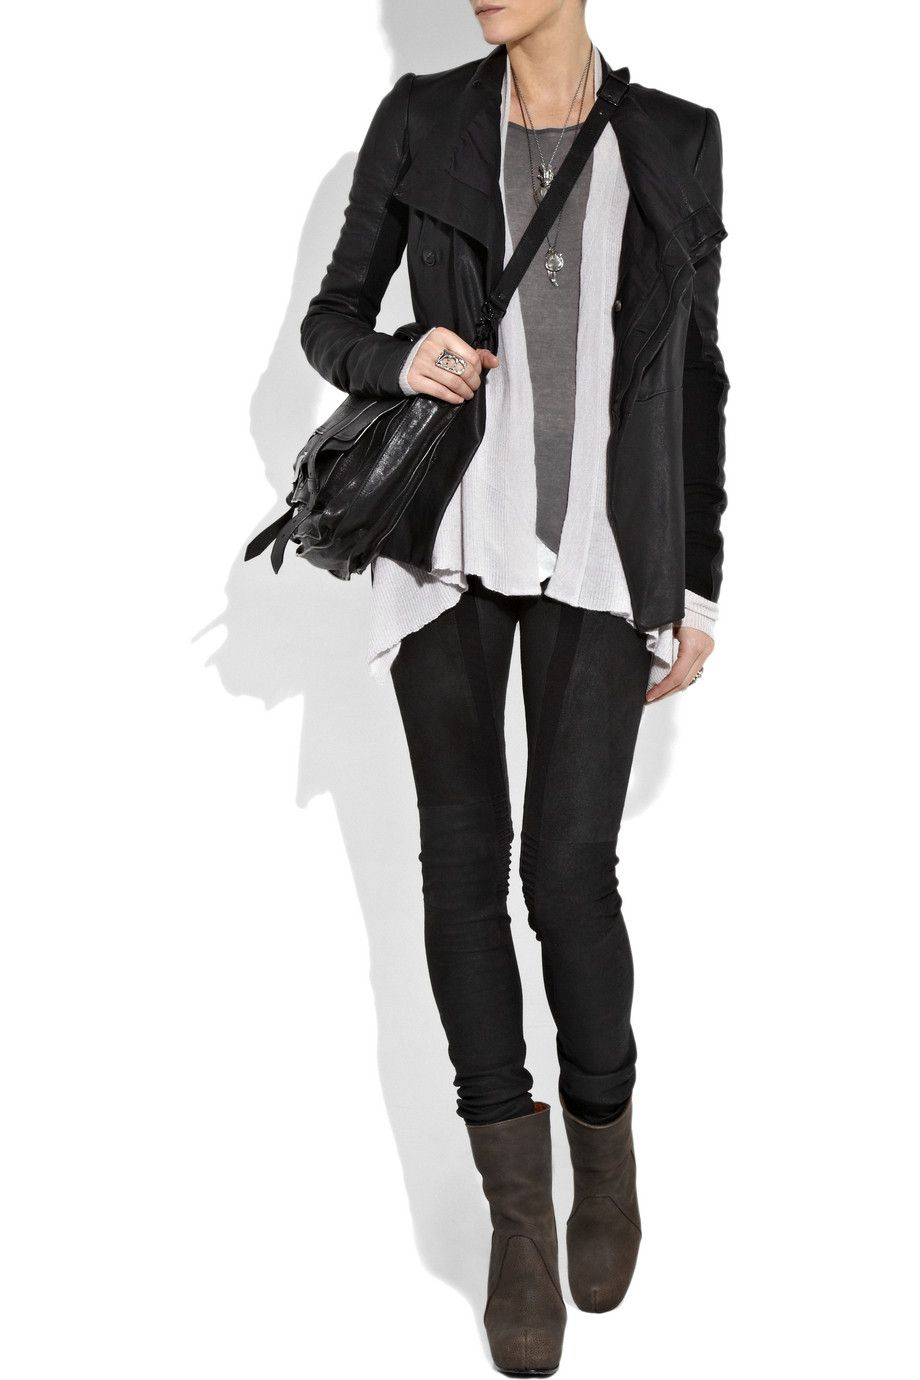 edgy fall outfit